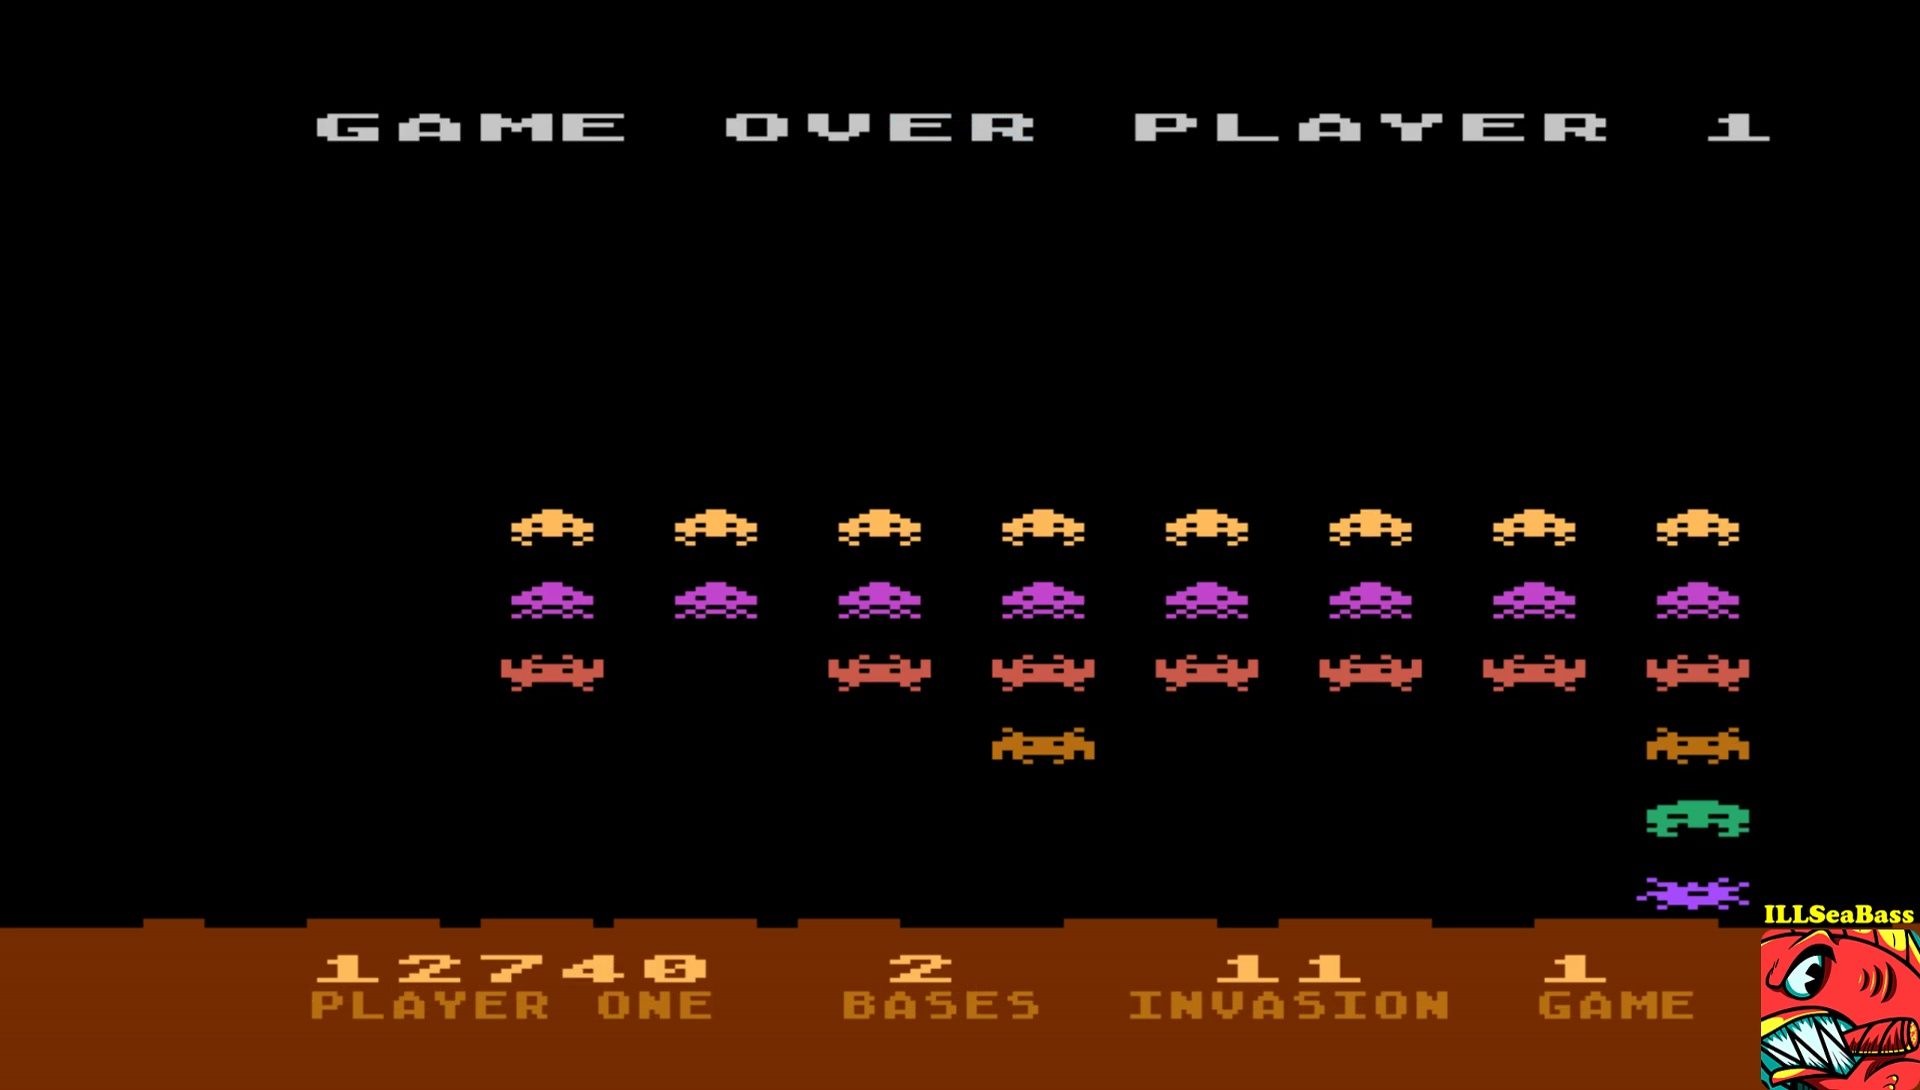 ILLSeaBass: Atari Invaders (Atari 400/800/XL/XE Emulated) 12,740 points on 2017-06-24 23:04:12